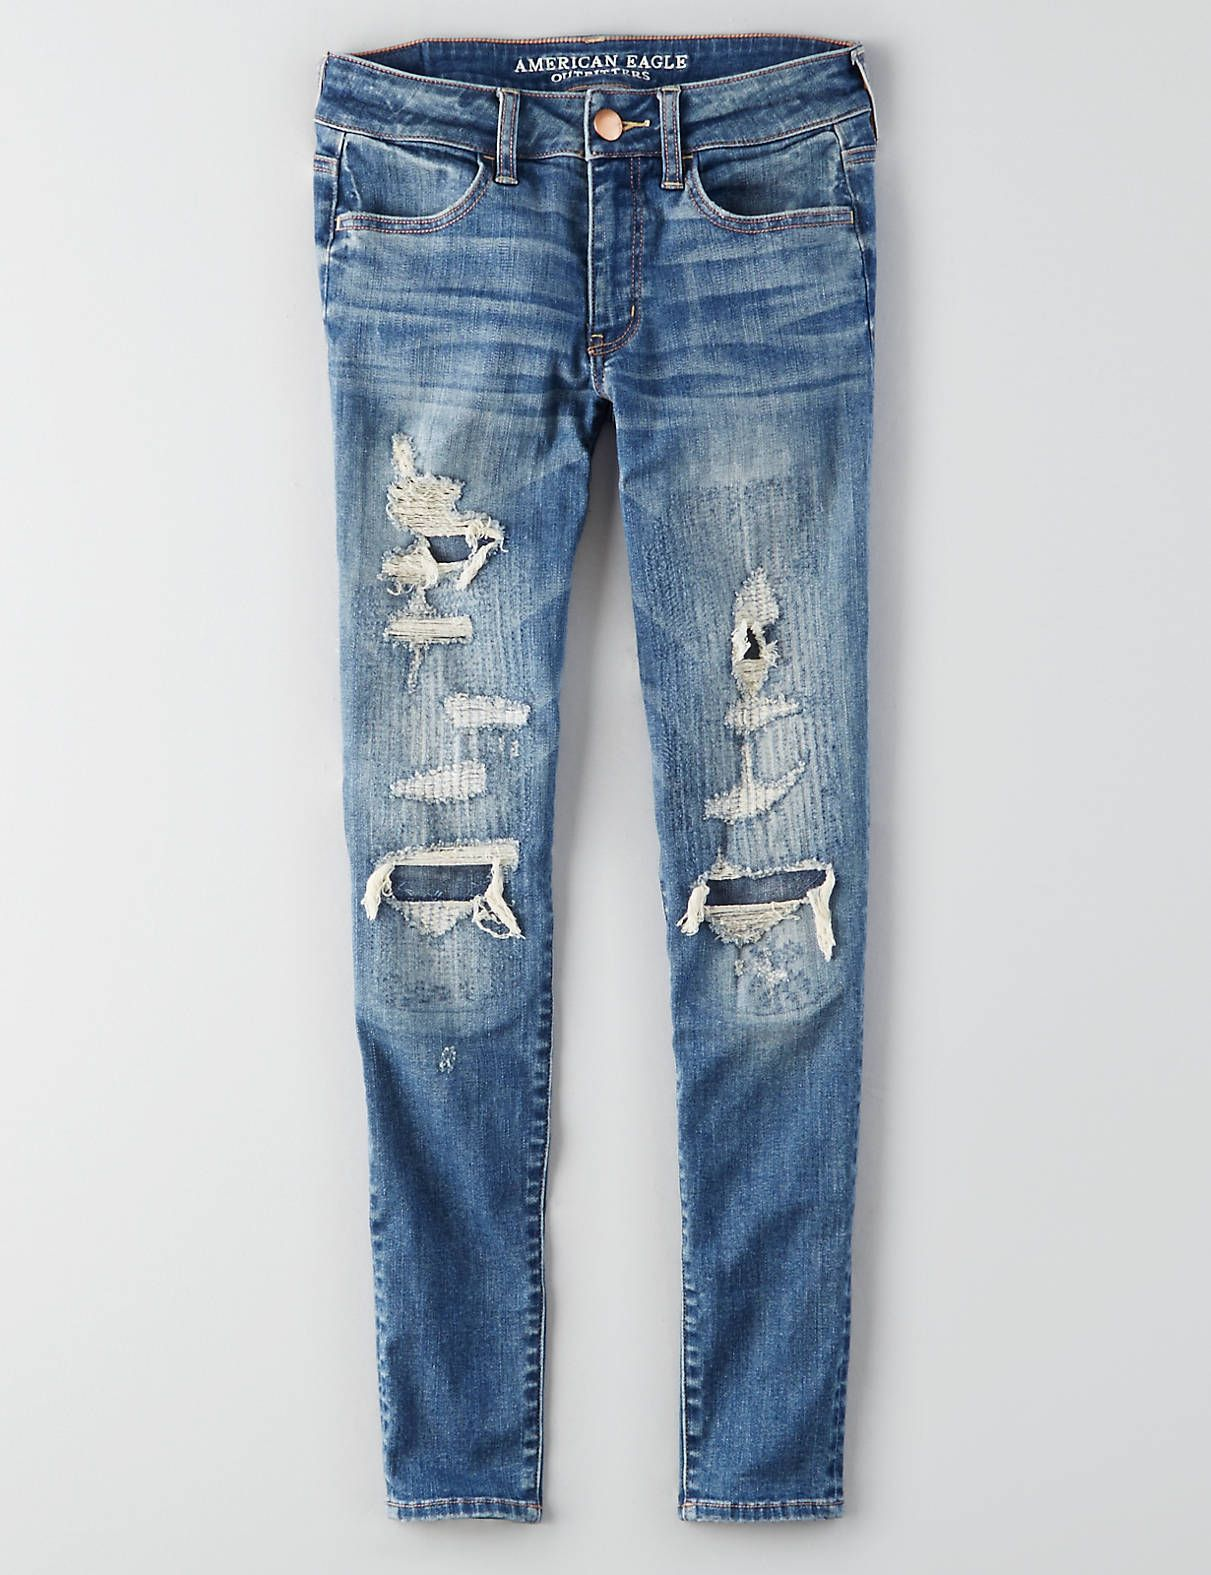 American eagle pants for men